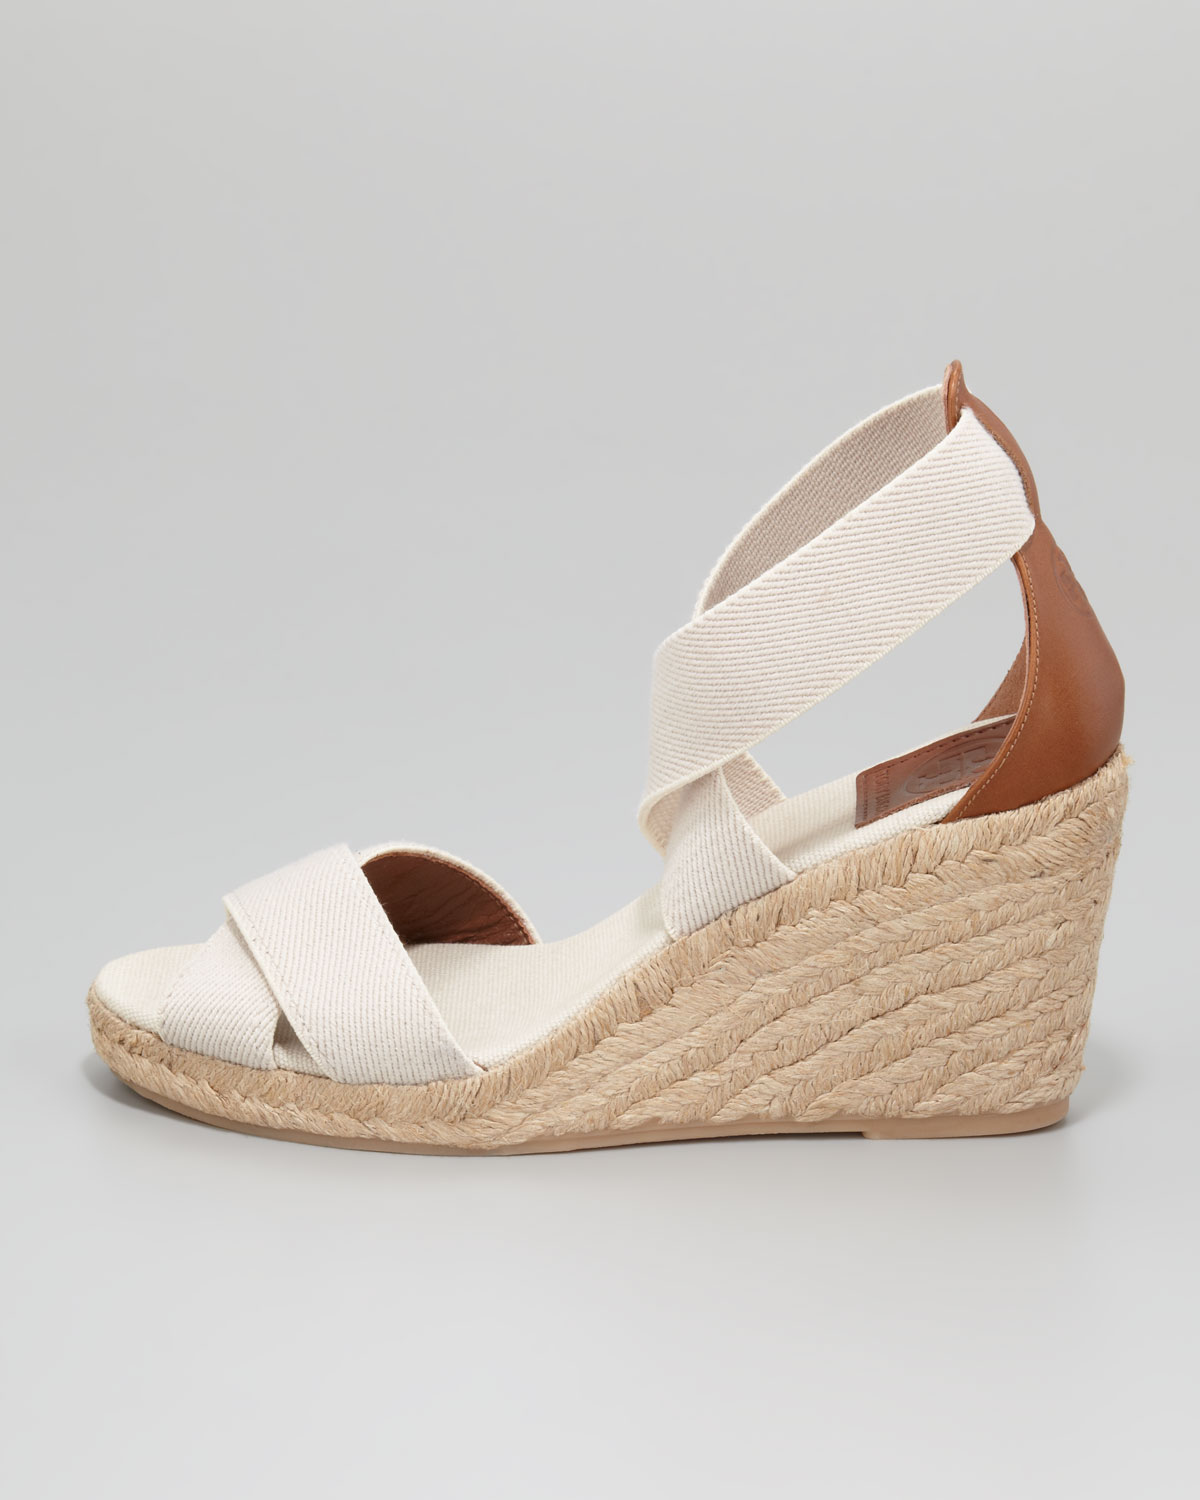 74d19658465 Tory Burch Natural Adonis Stretch Espadrille Wedges